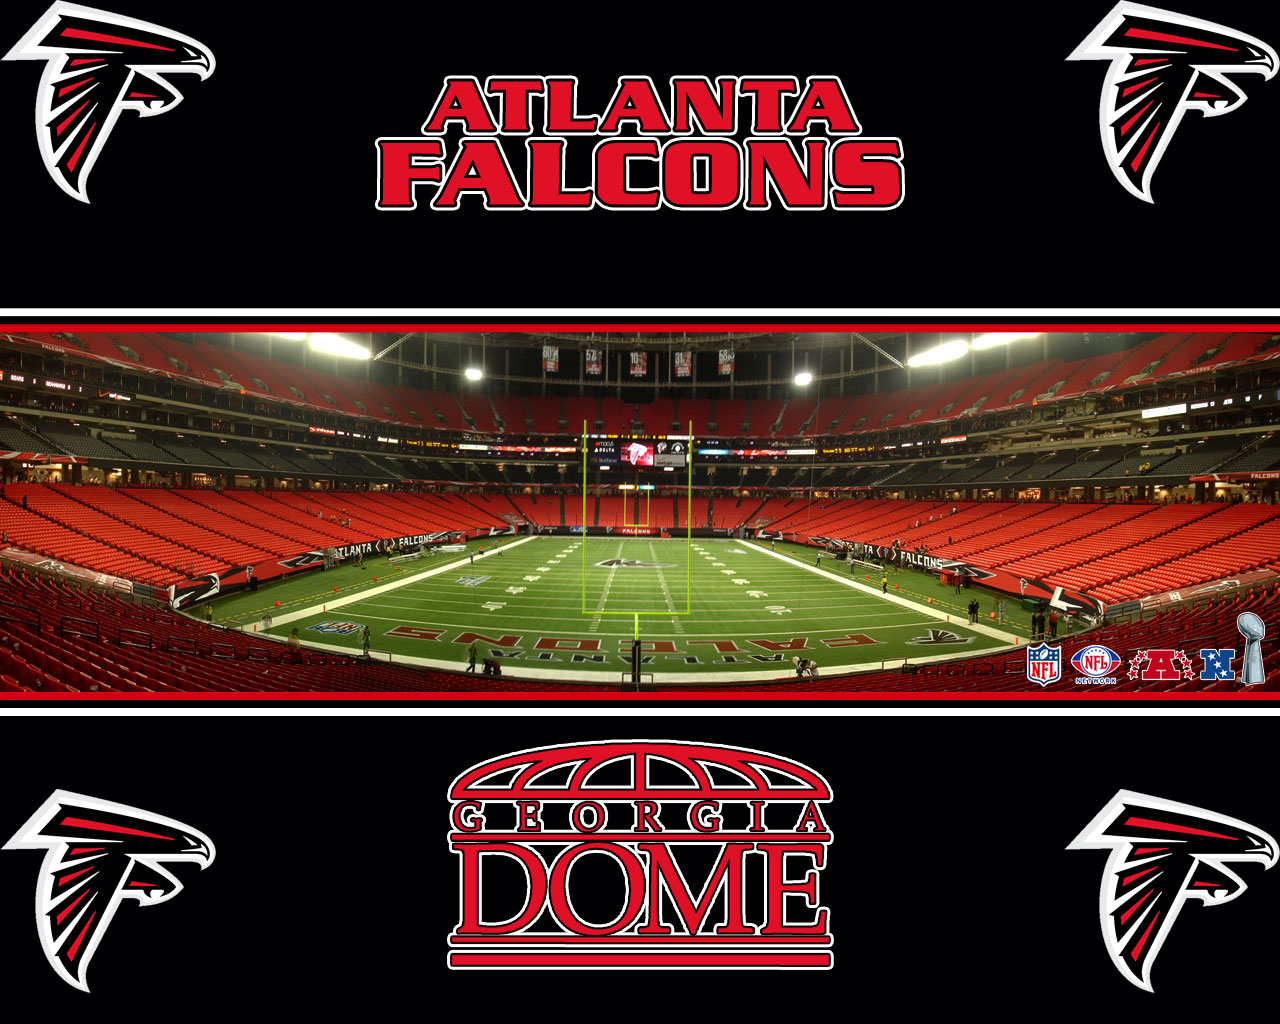 Atlanta Falcons Images: Atlanta Falcons